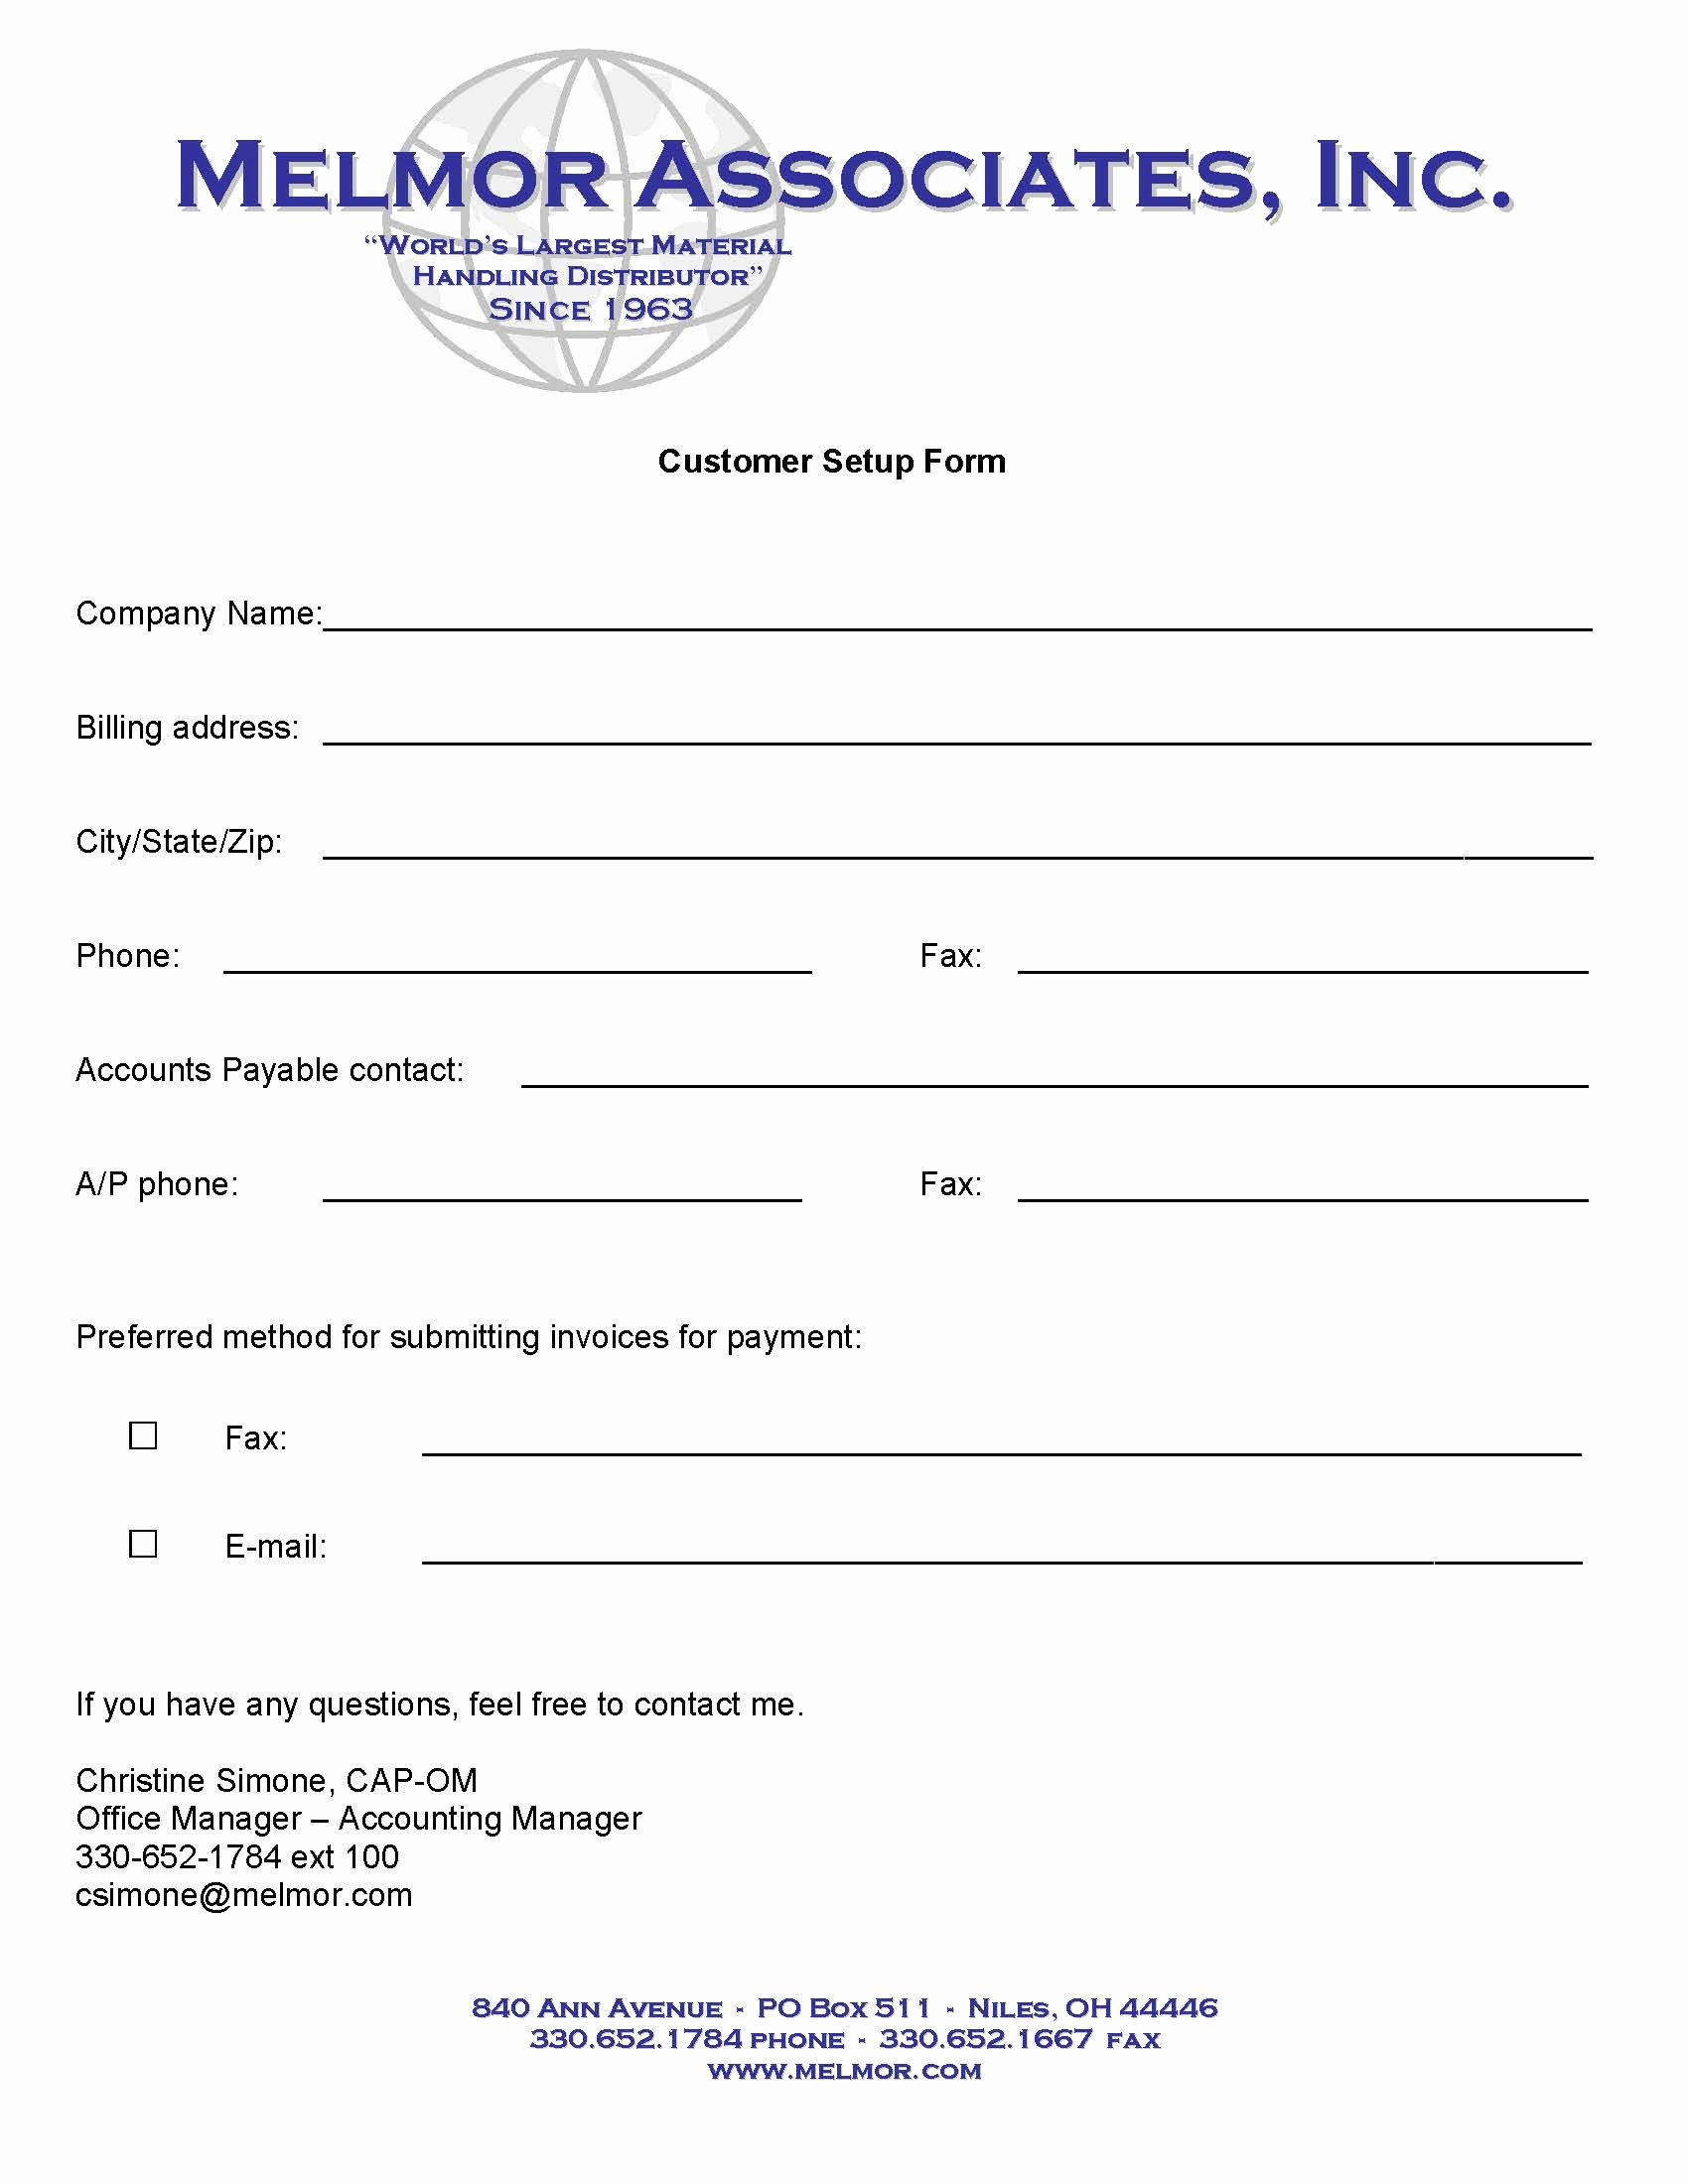 Vendor Setup form Template Fresh New Accounts Melmor associates Inc